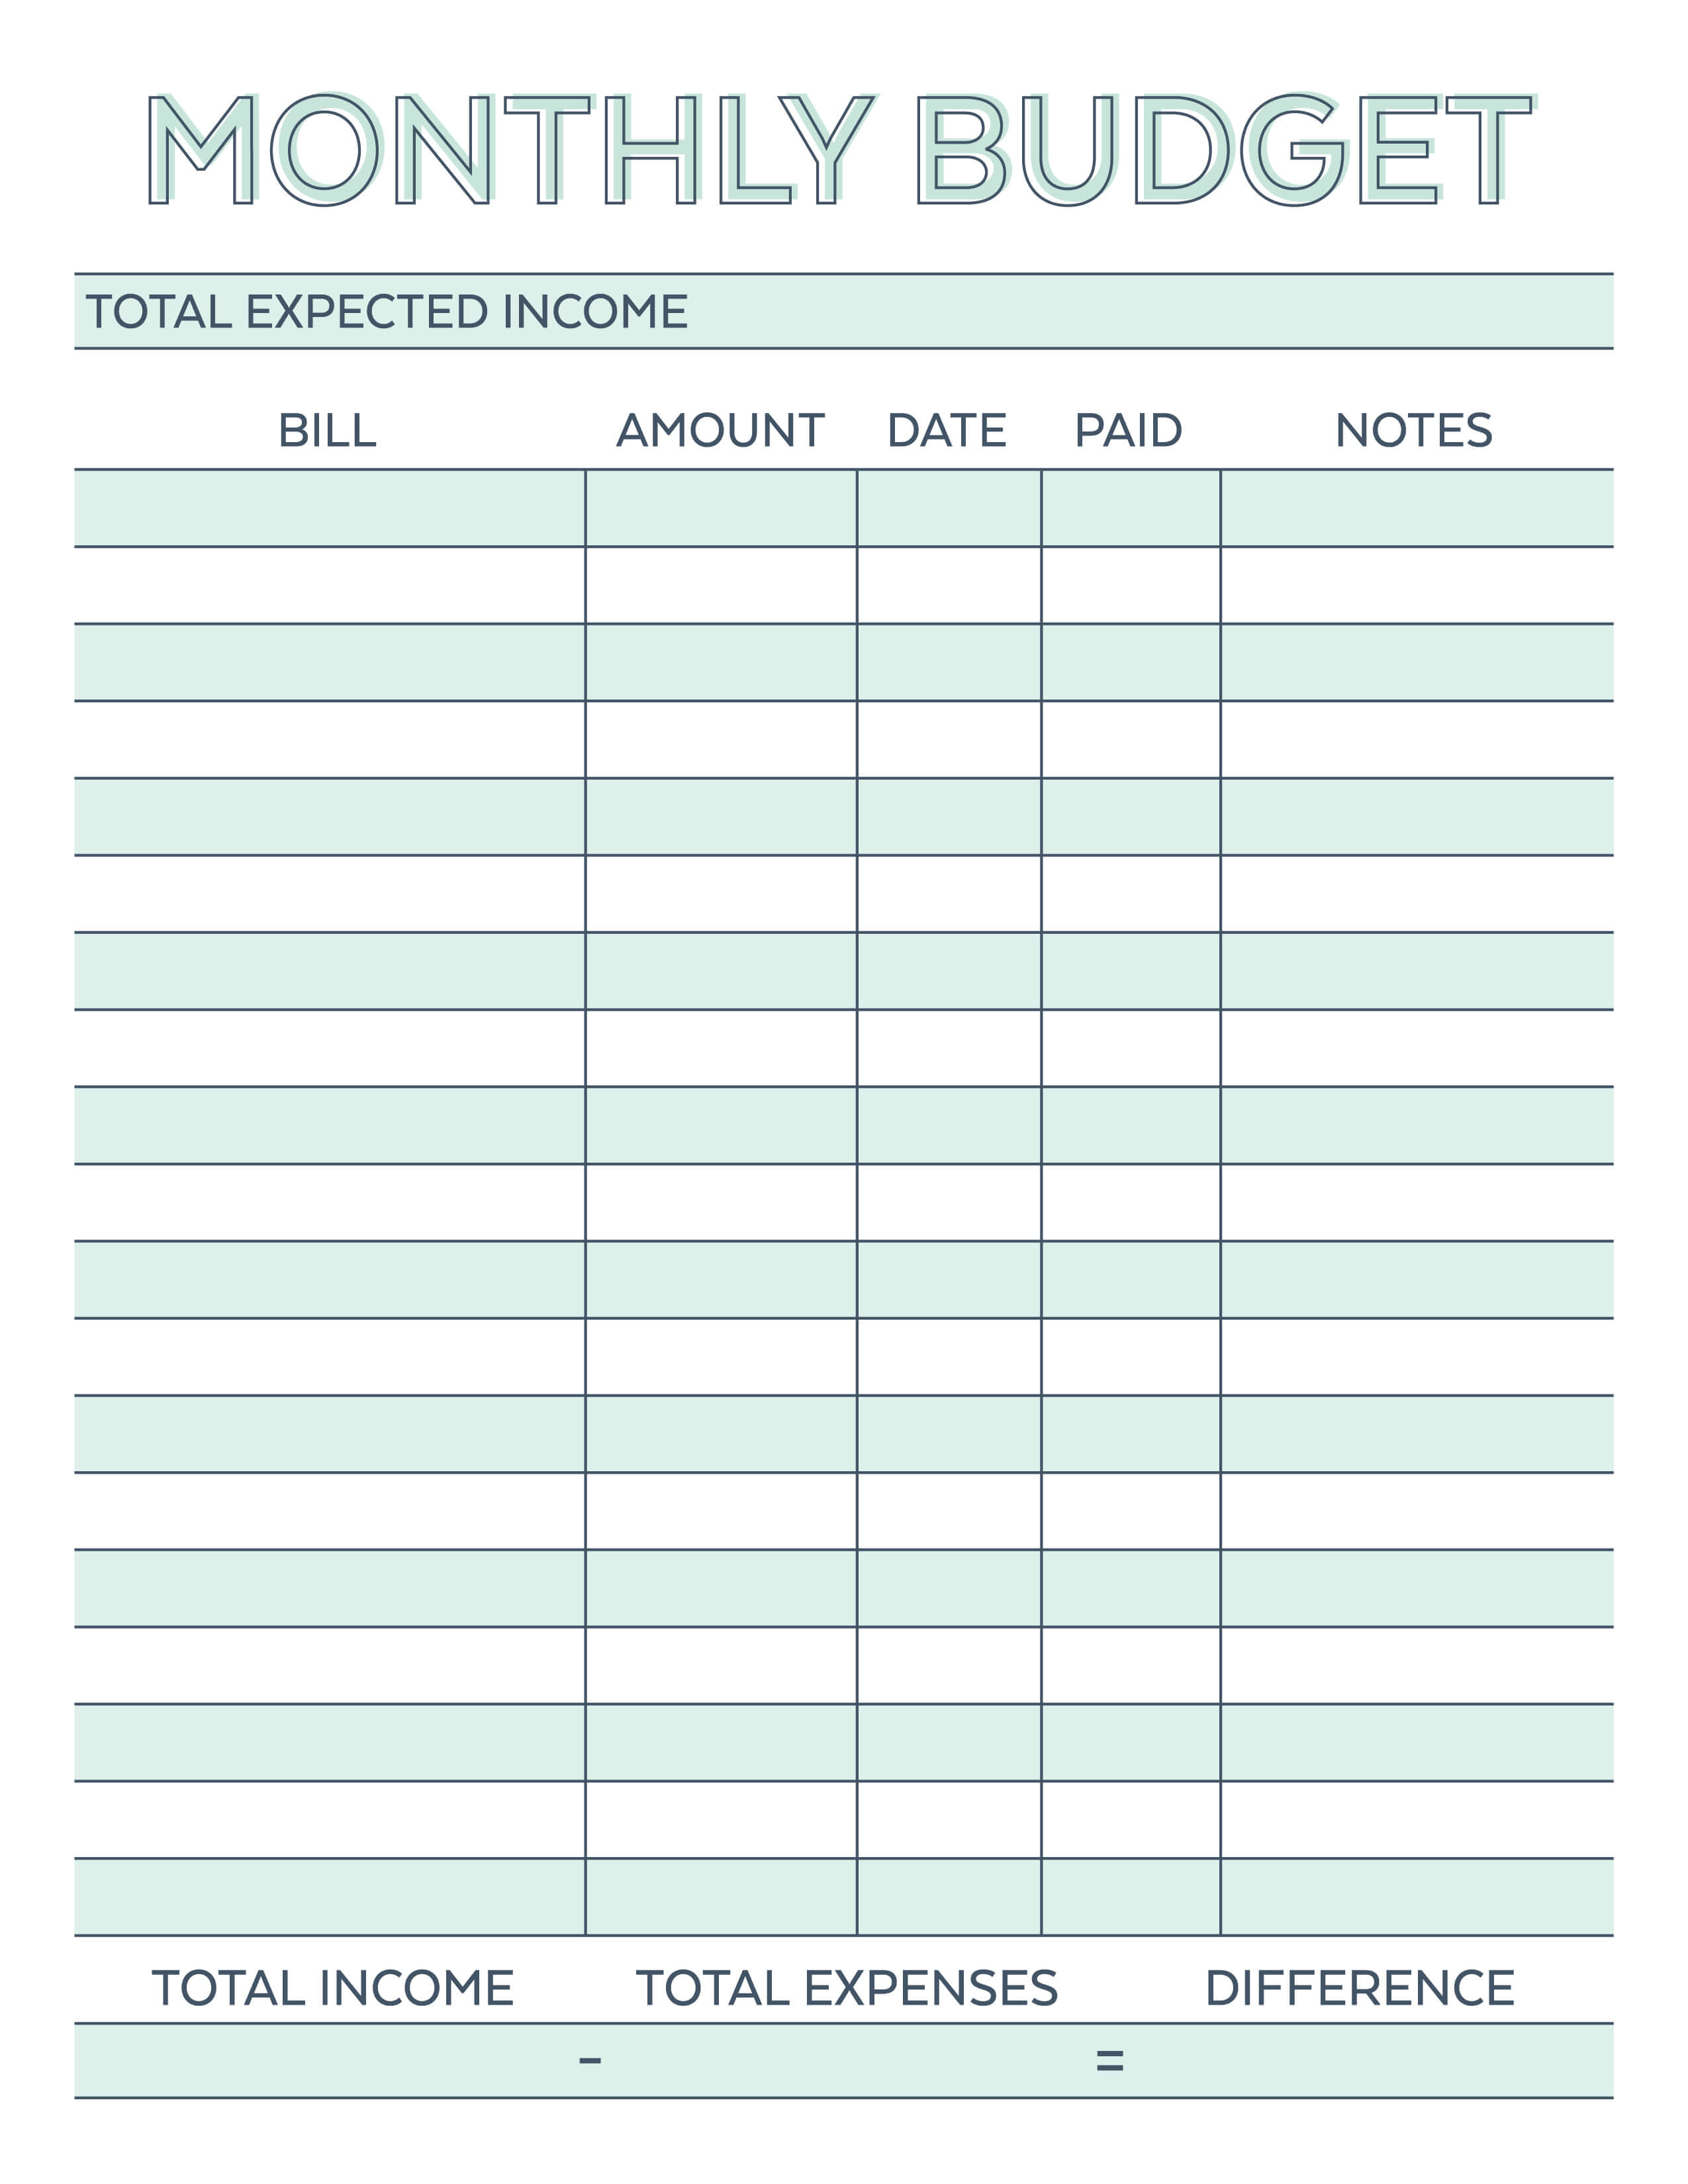 Printable Household Budget Worksheets : Free printable monthly budget planner worksheet